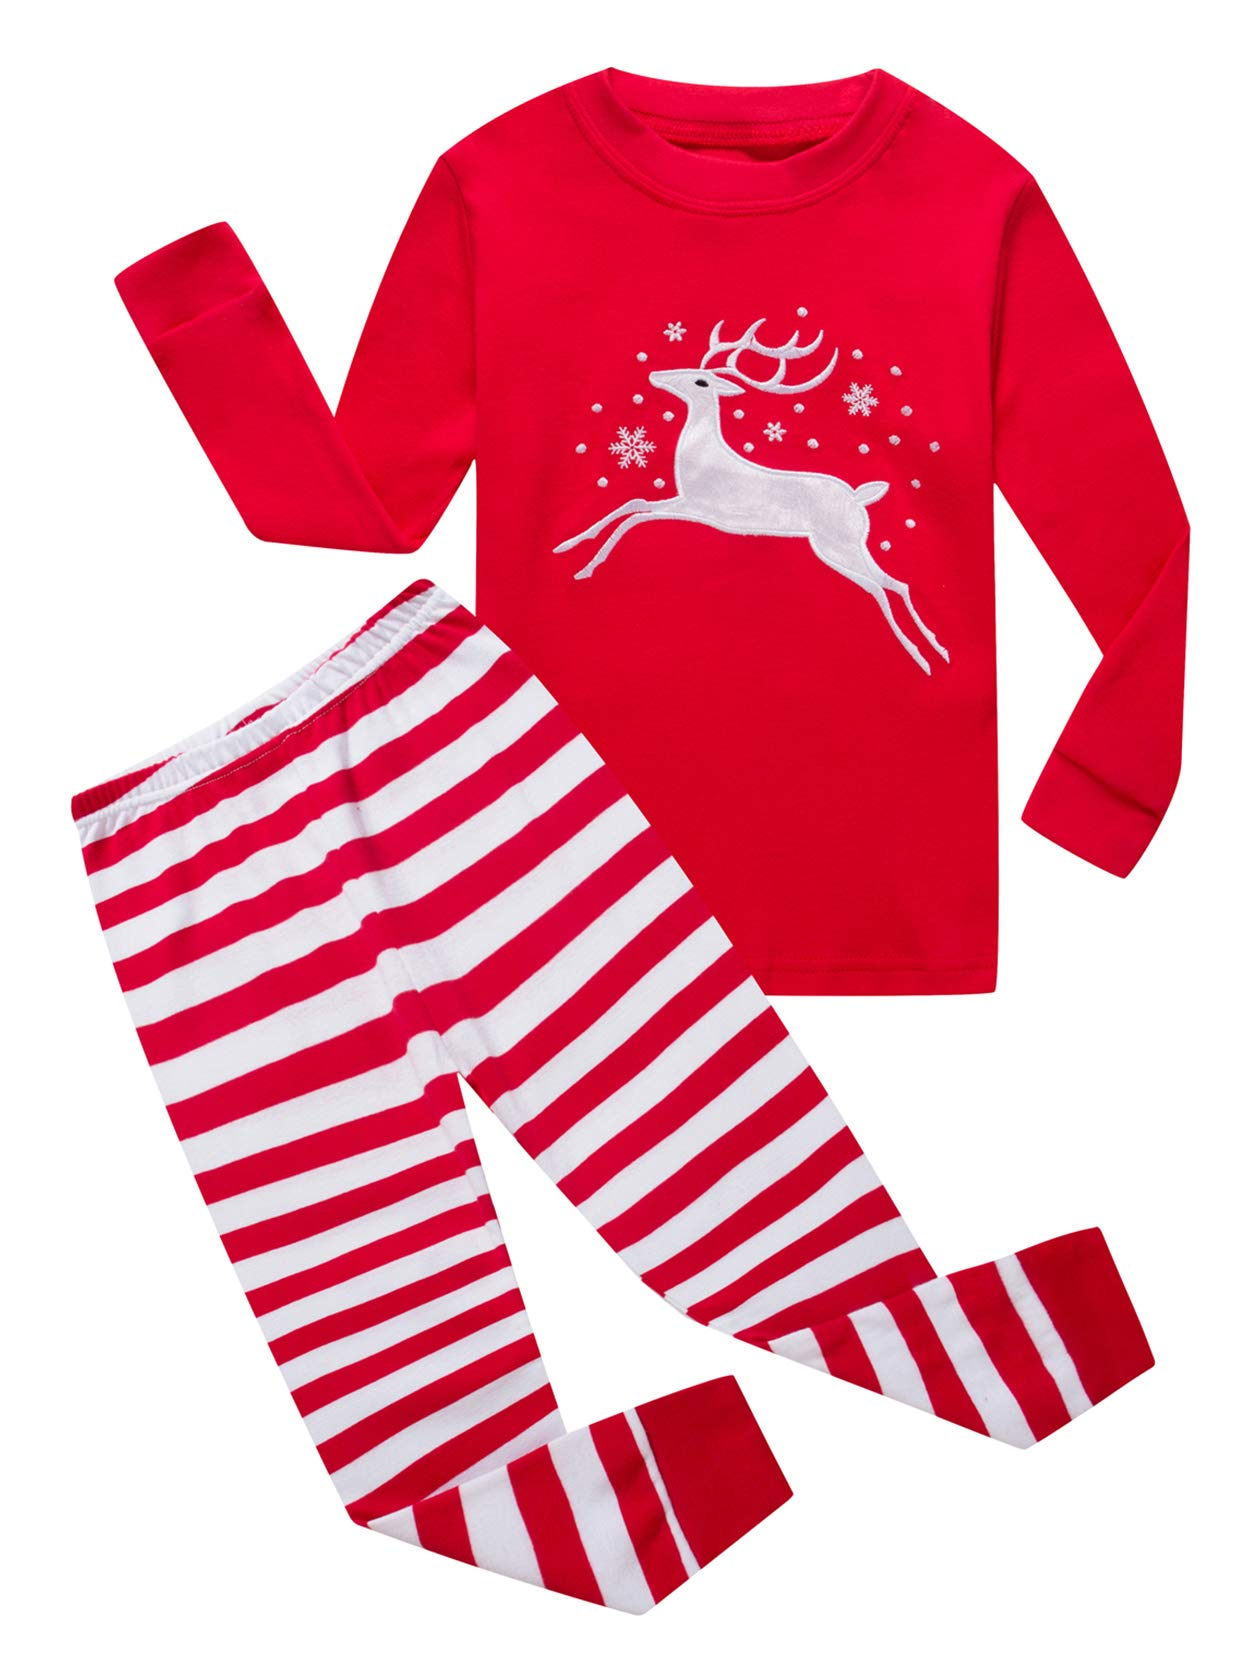 Family Feeling Little Girls Boys Long Sleeve Christmas Pajamas Sets 100% Cotton Pyjamas Toddler Kids Pjs Size 3T Reindeer by Family Feeling